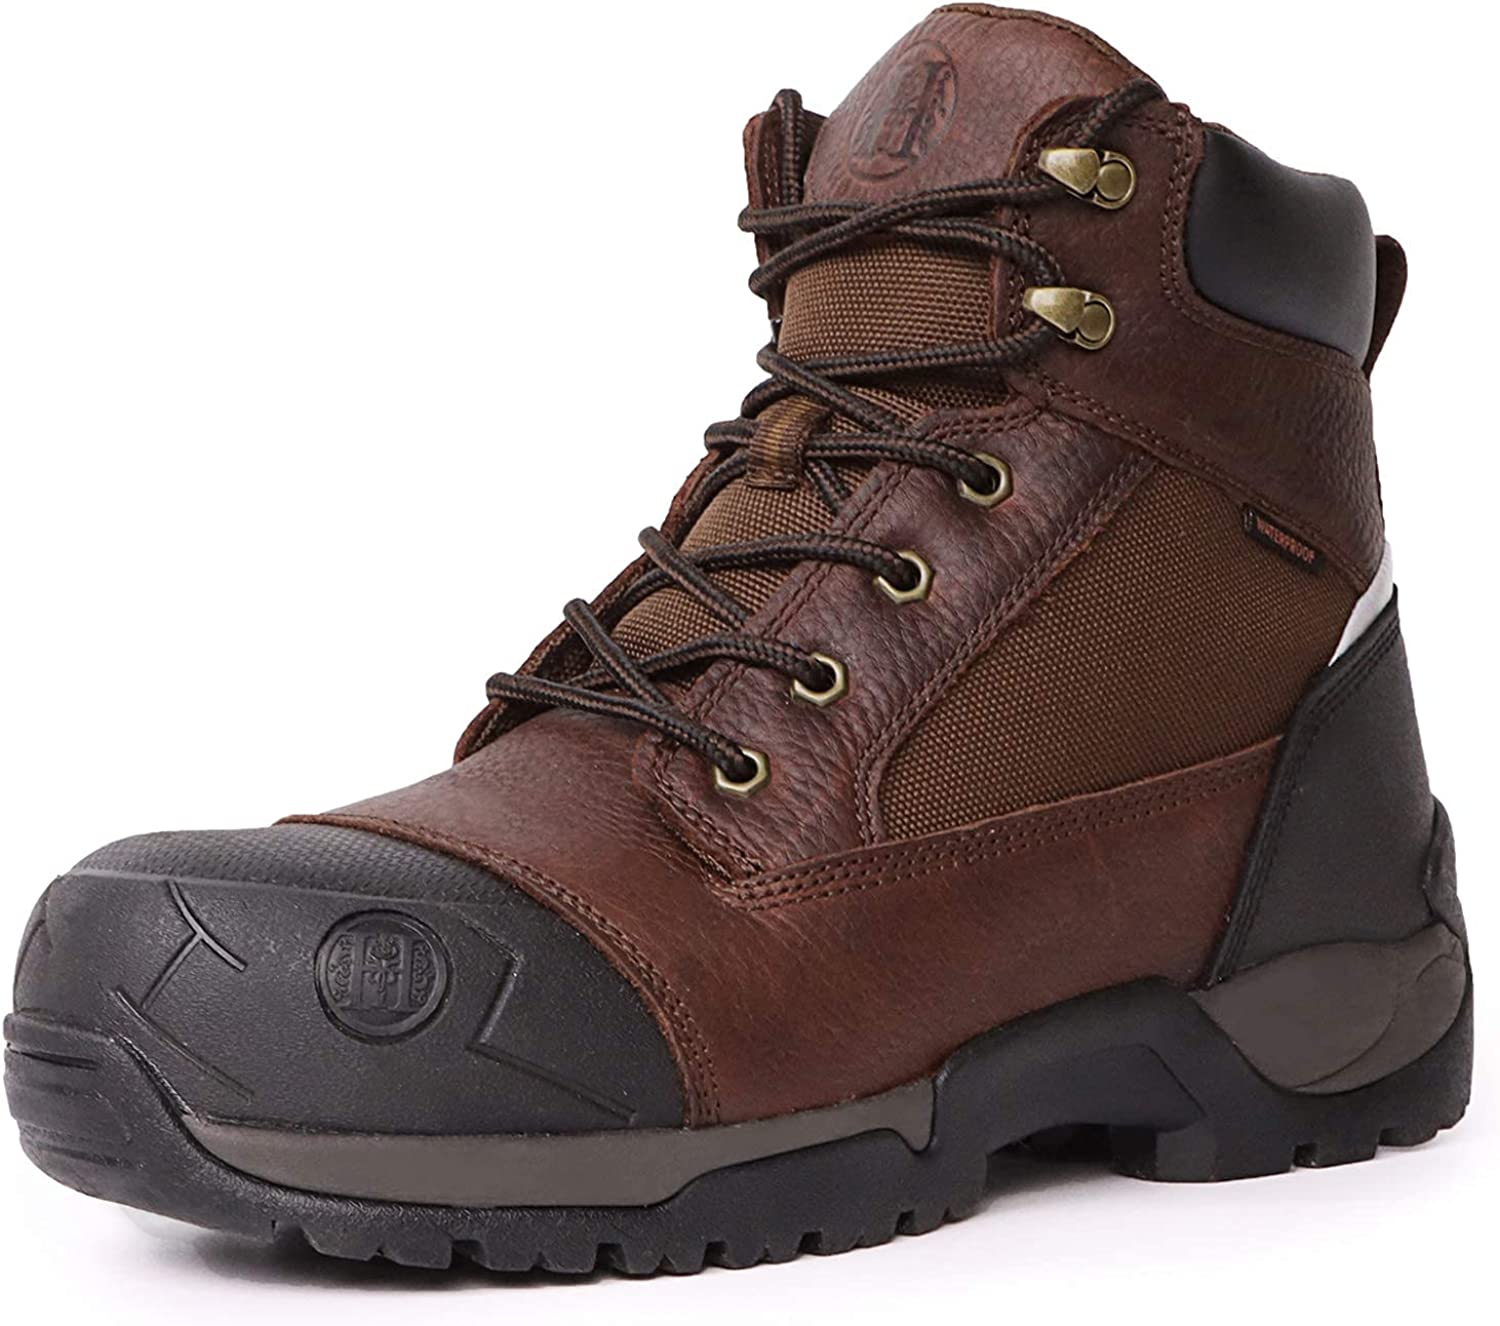 6 Composite Toe /& Soft Toe Mens Work Boots Claret HANDMEN Work Boots for Men Non-Slip Puncture-Proof Water Resistant Anti-Fatigue Safety EH Moc Toe Construction Work Shoes